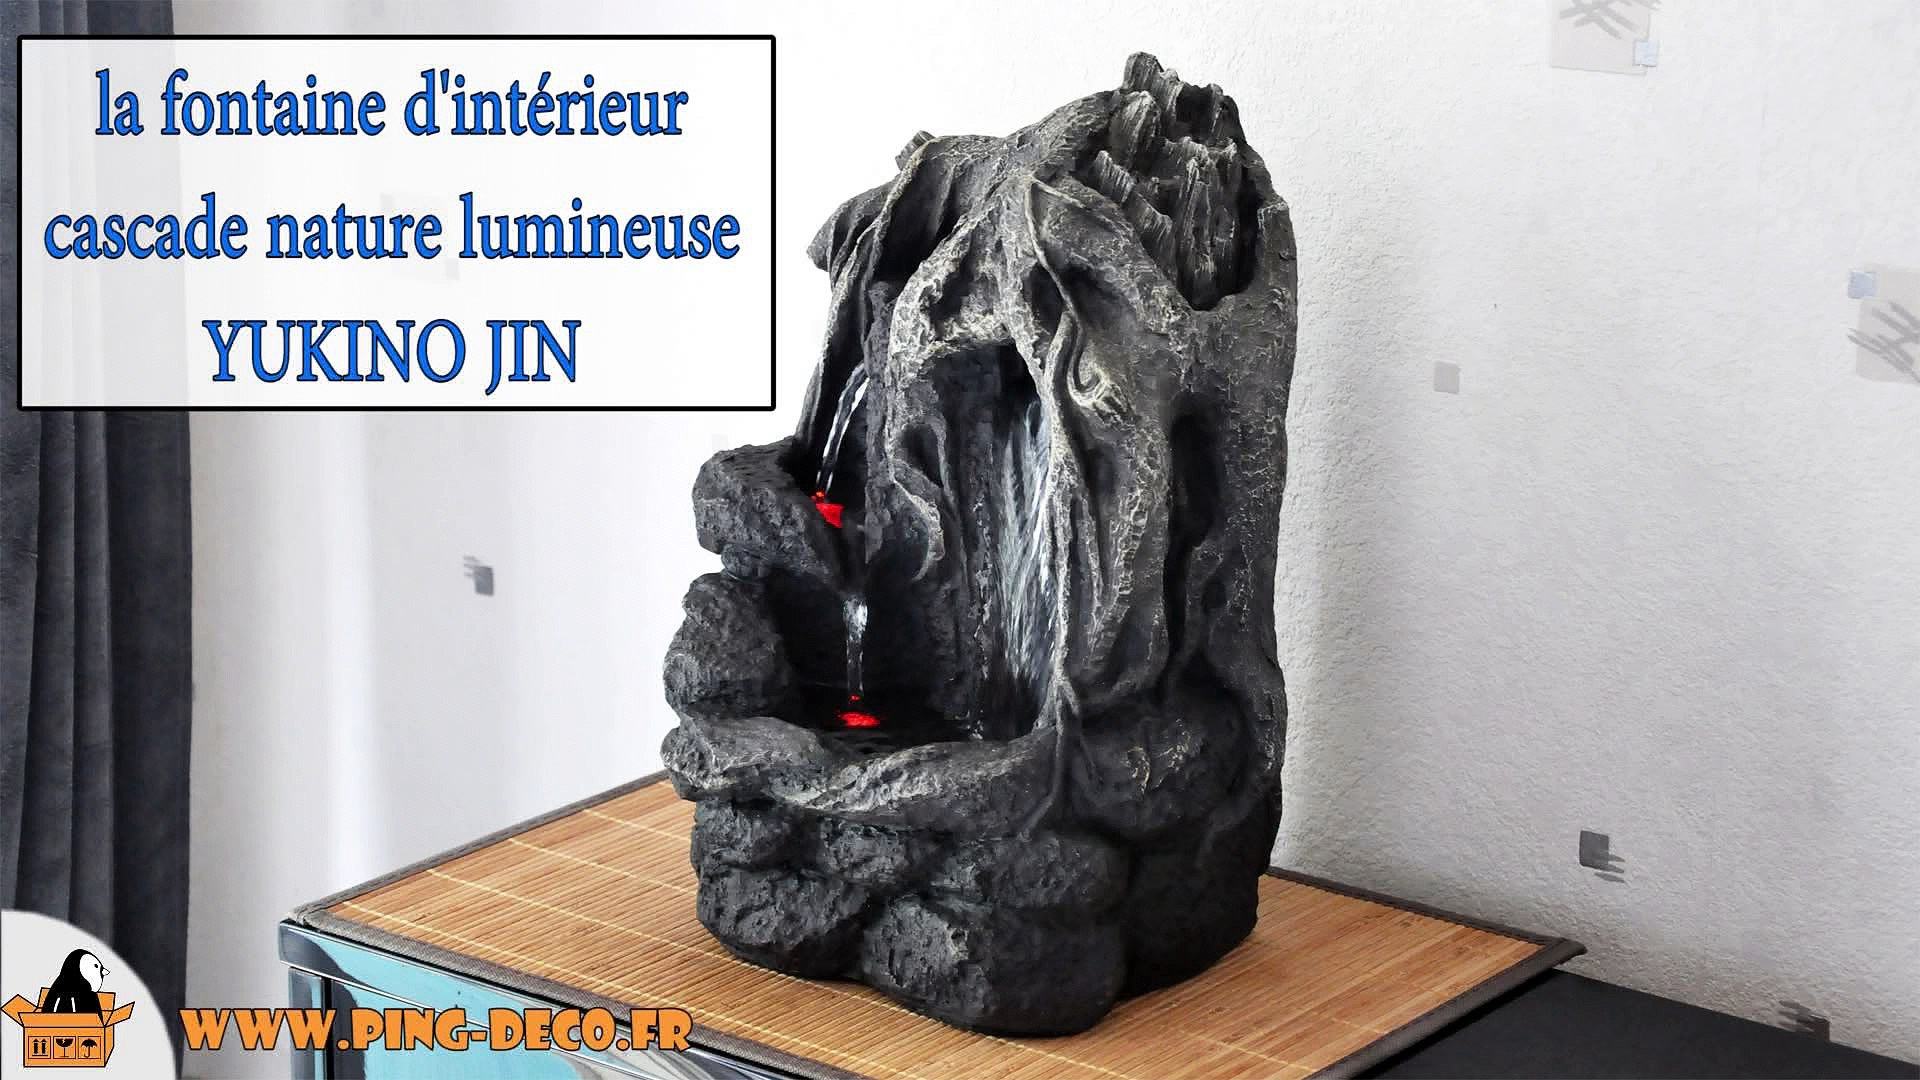 Grande Fontaine D'interieur Bouddha Grande Fontaine Cascade Nature Yukino Jin Www Ping Deco Fr